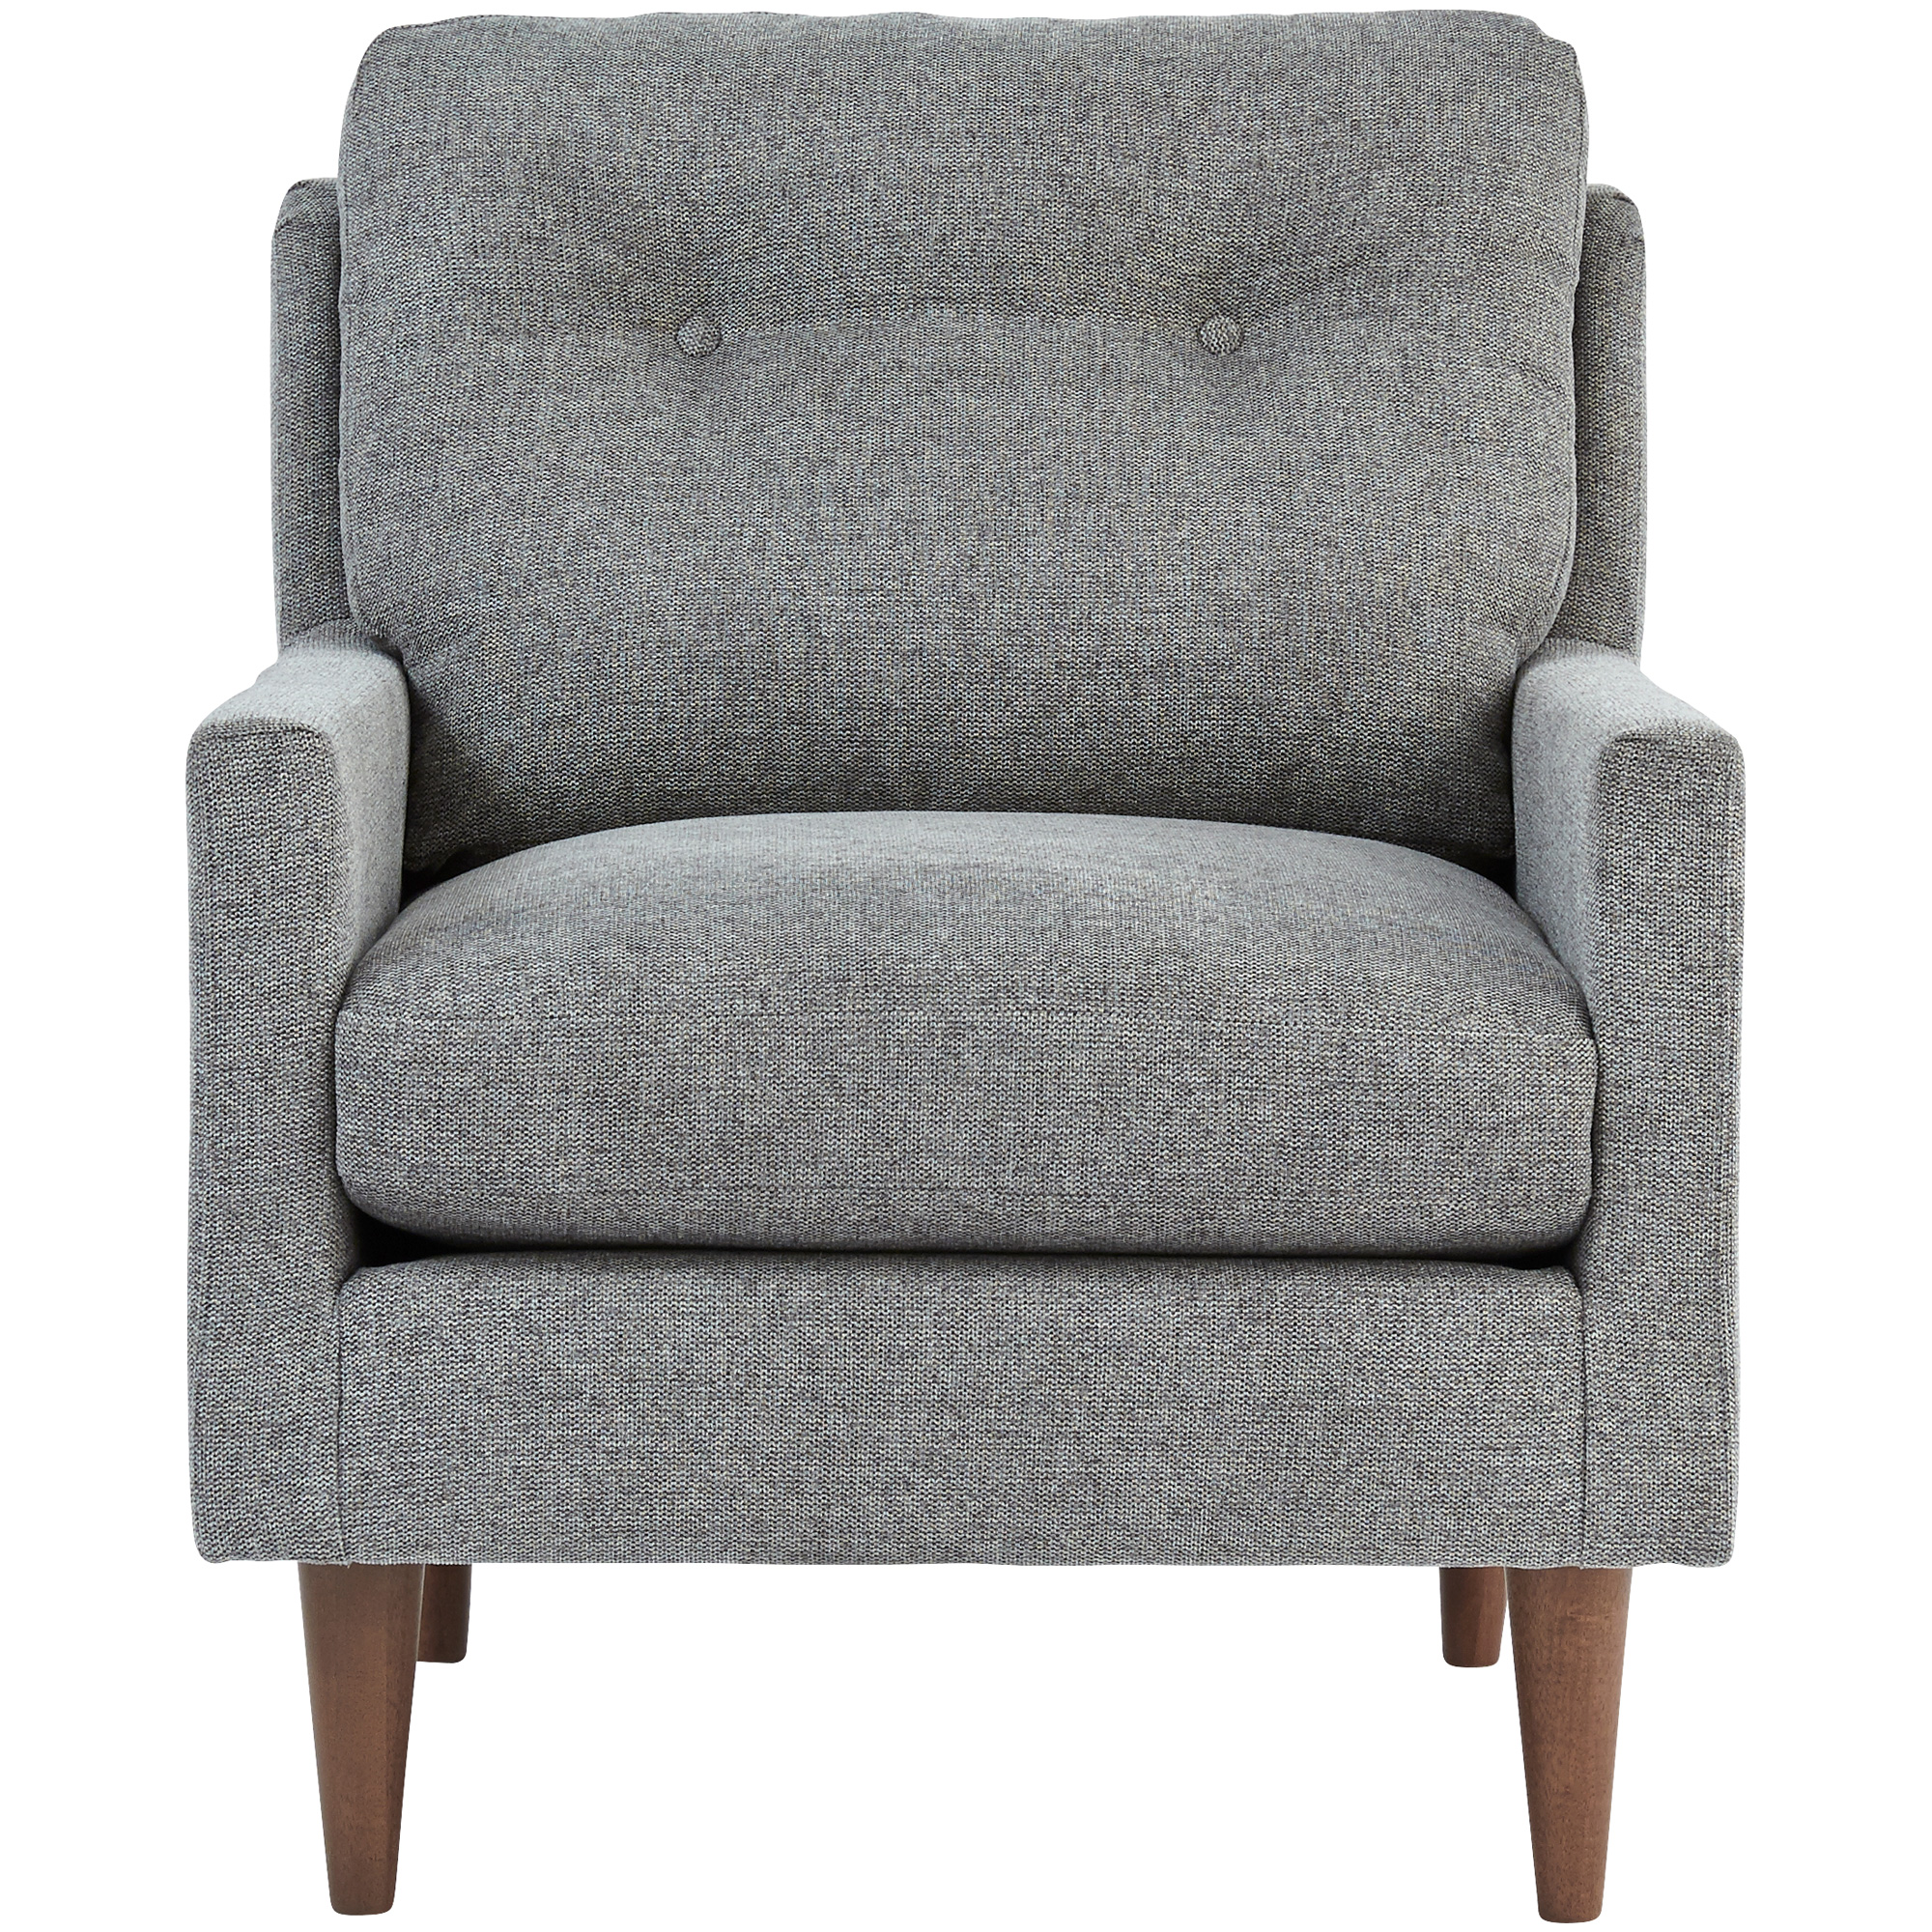 Best Home Furnishings | Trevin Ash Chair